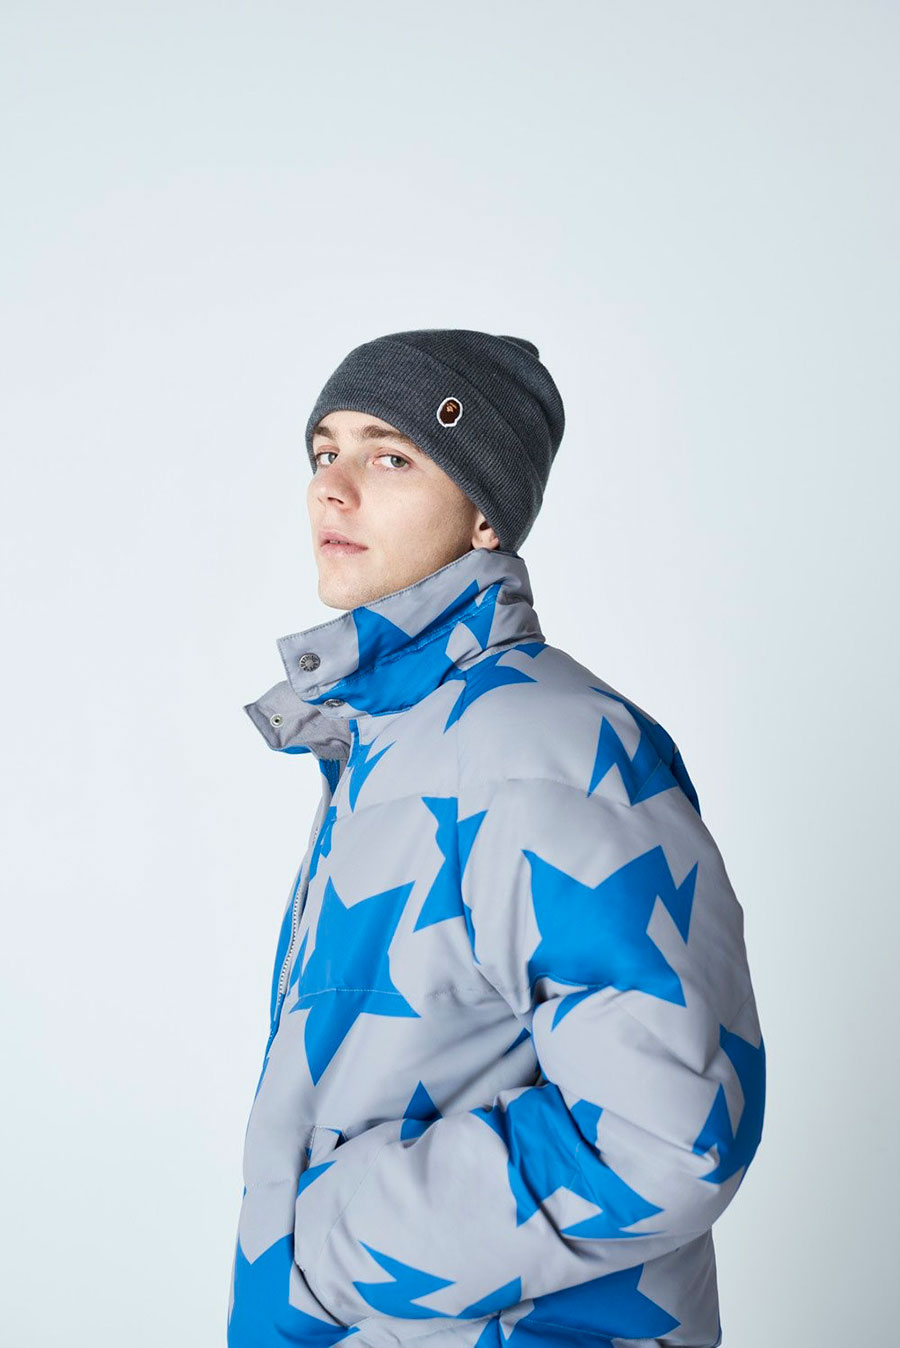 潮牌 A BATHING APE® 发布 2020 最新秋冬男装搭配造型 Lookbook插图(5)